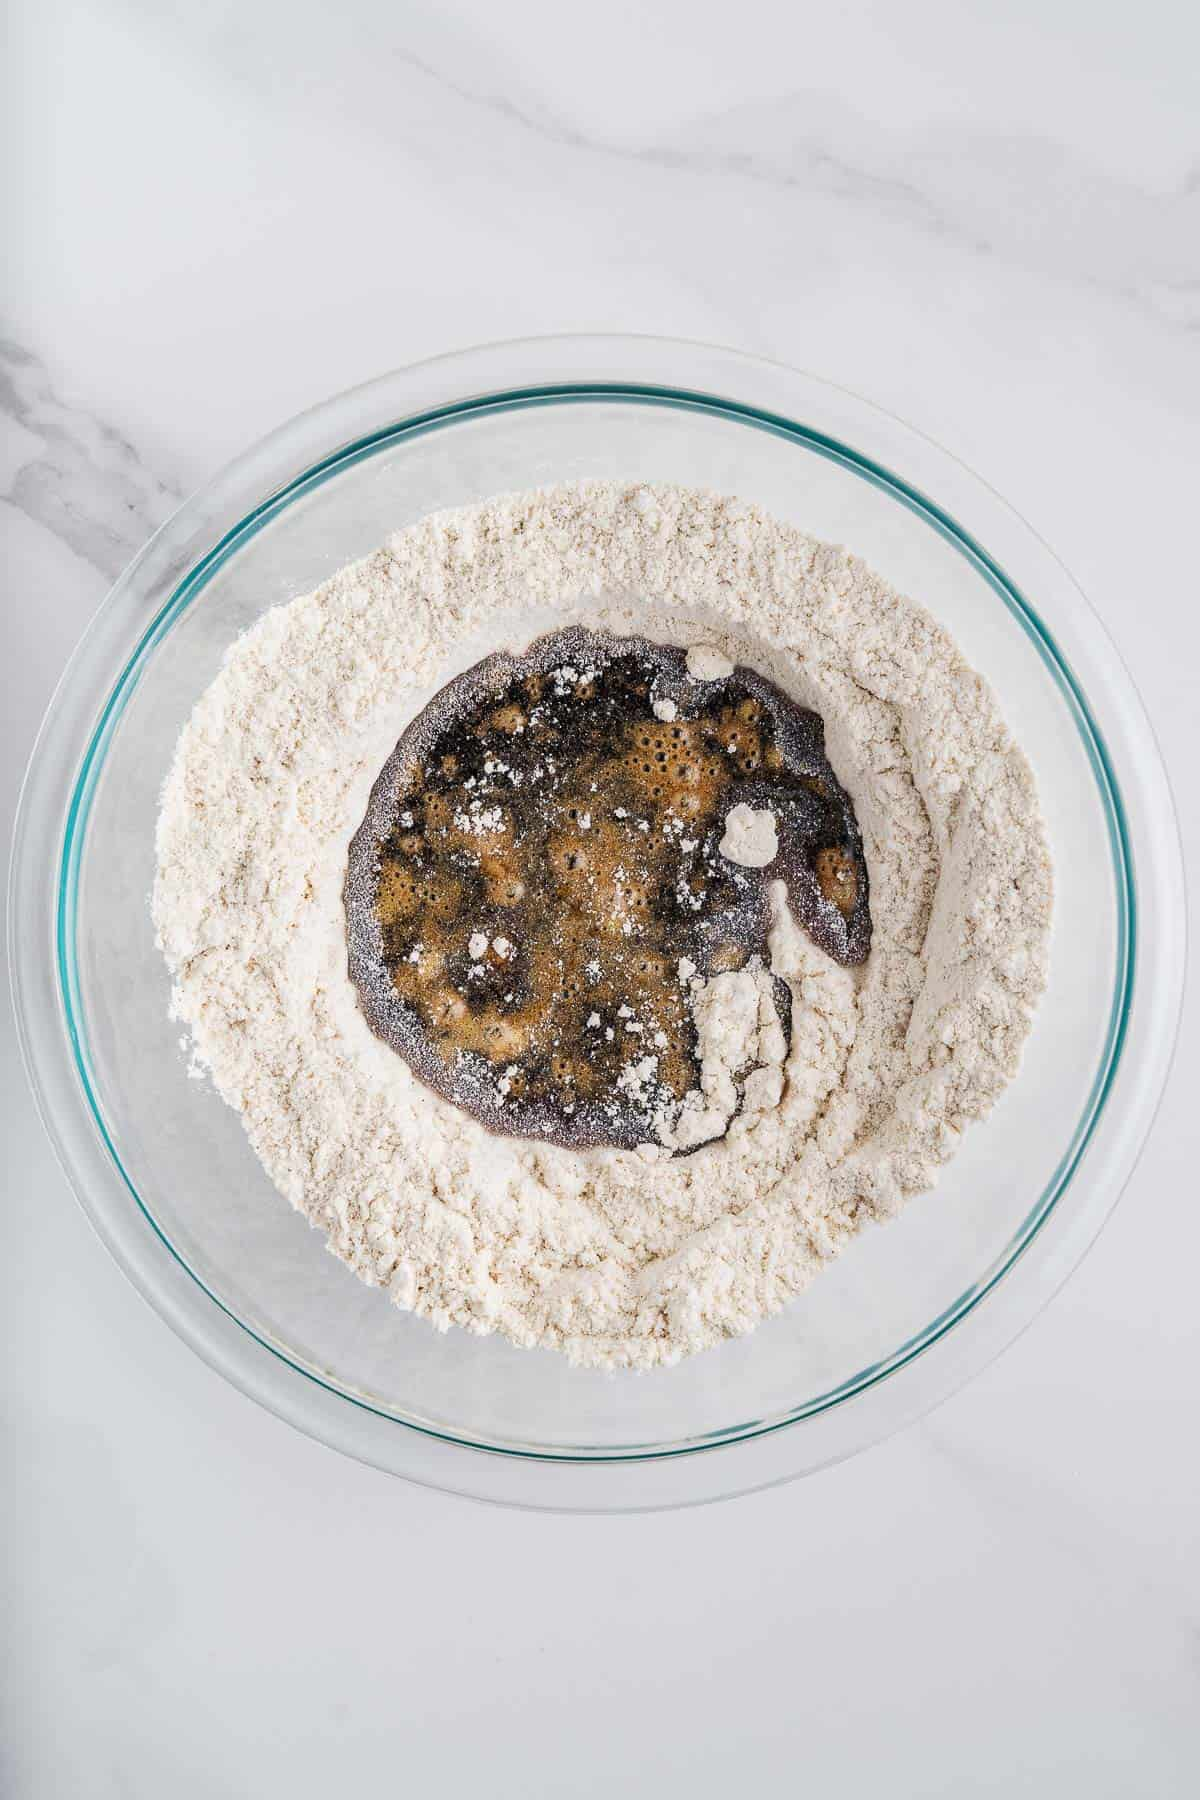 Flour and Piloncillo Syrup in a Bowl